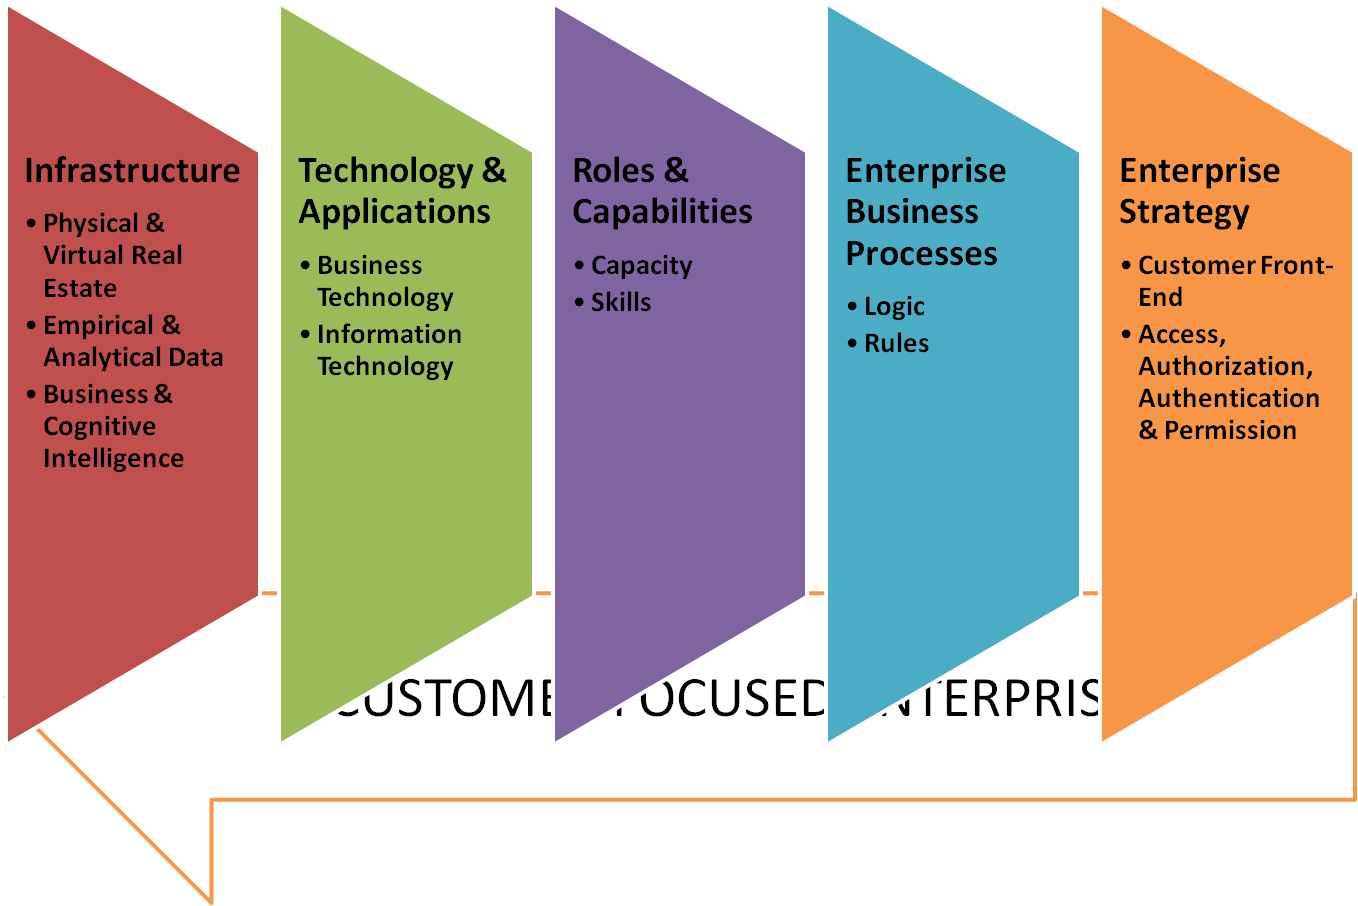 Free Database Software furthermore Nordic Announces New Line Of Cortex M4 Ble Socs besides Insight Launching Insights Driven Transformation besides Brand Architecture The Blueprint For Strategic Marketing Decisions in addition Business Intelligence How Well Is This Thought Through. on examples of architectures